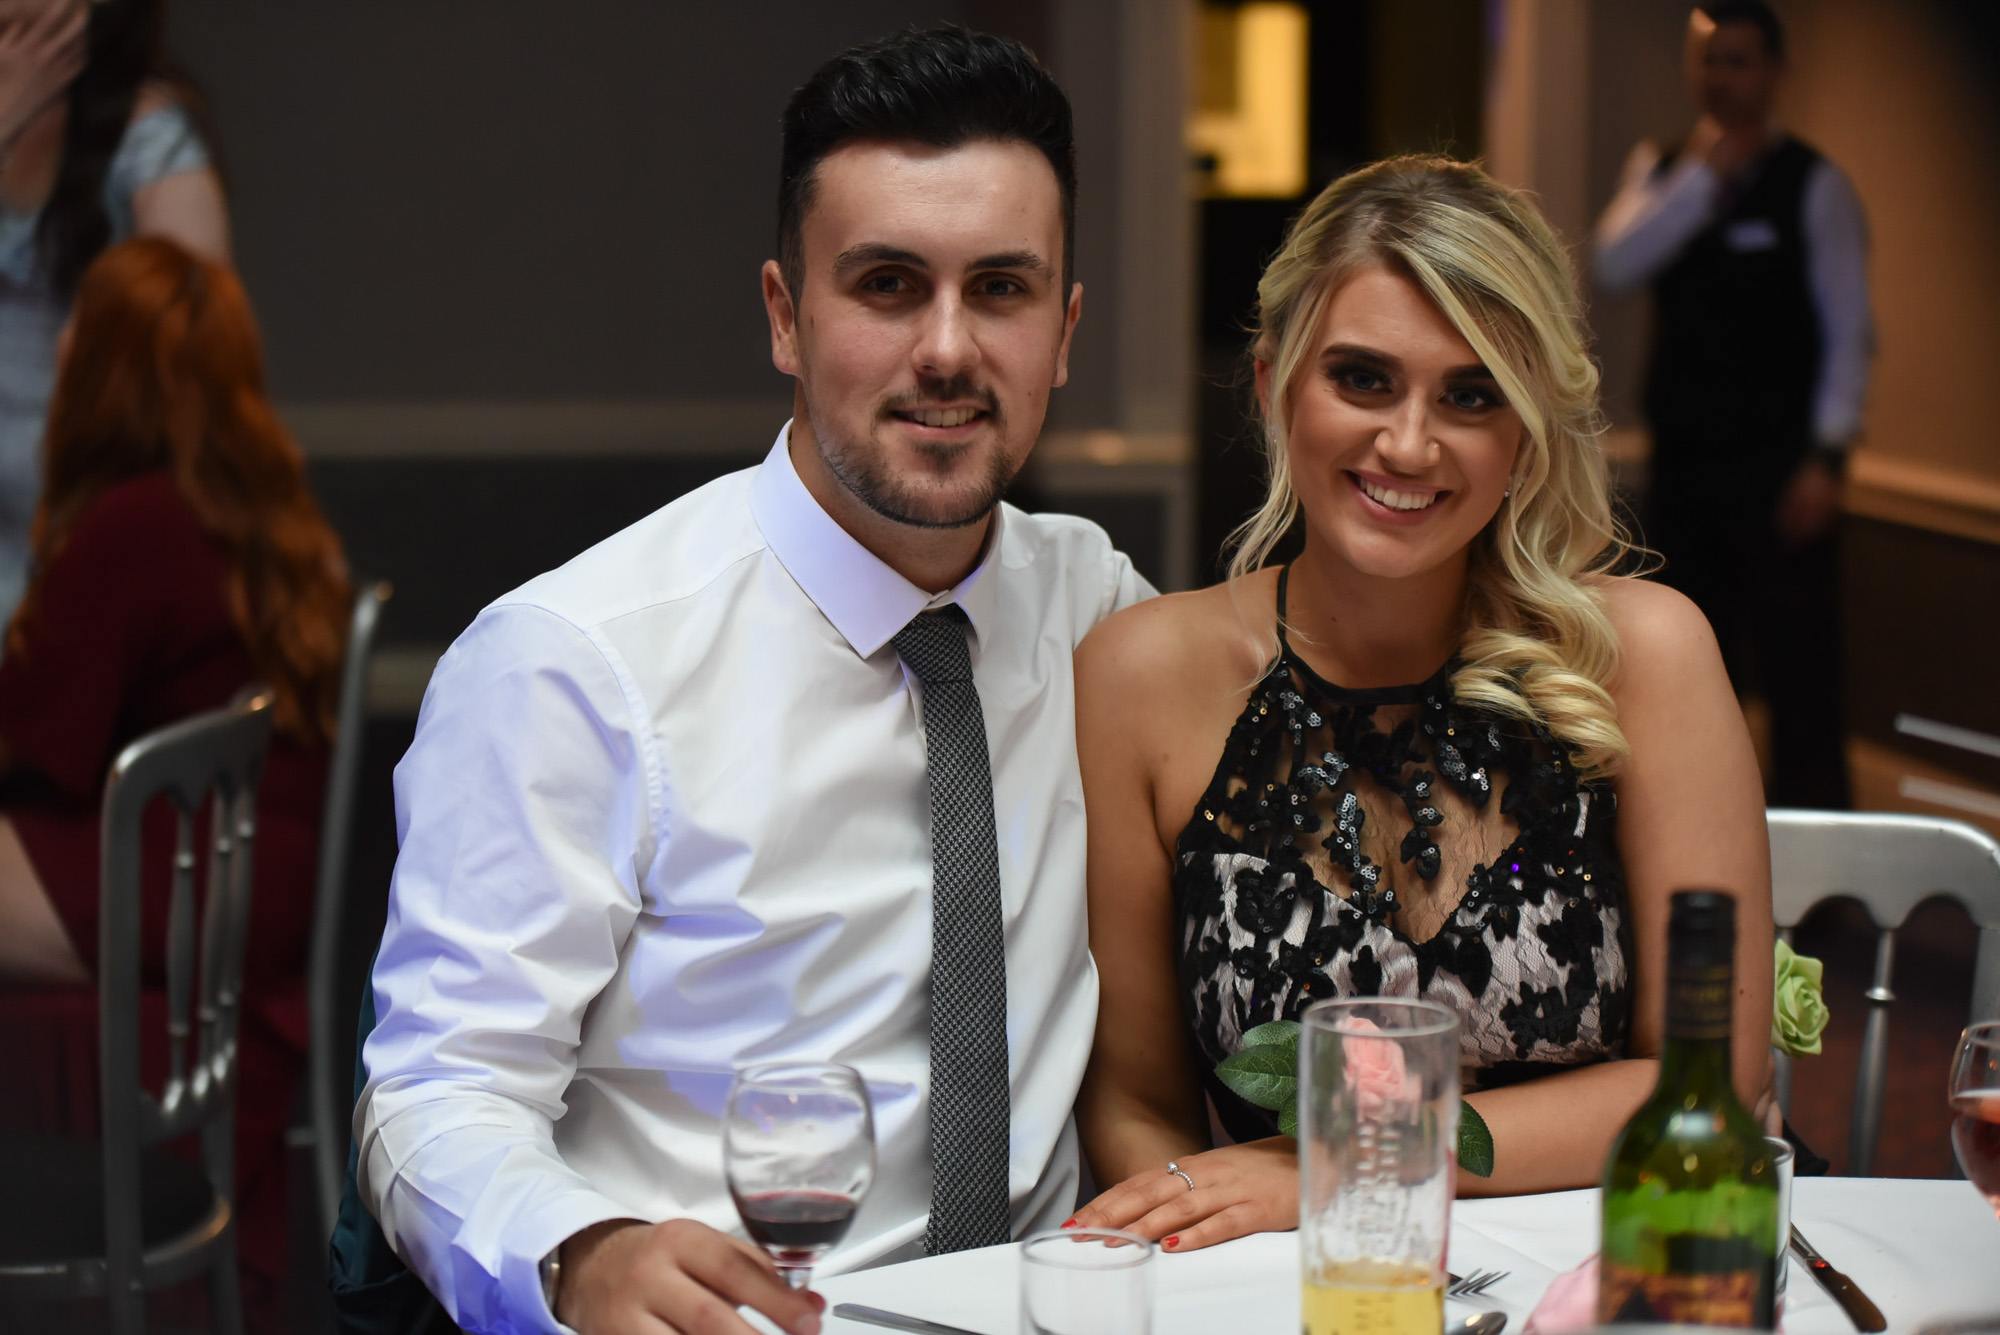 UCLAN_MT_BALL_2019_300.jpg